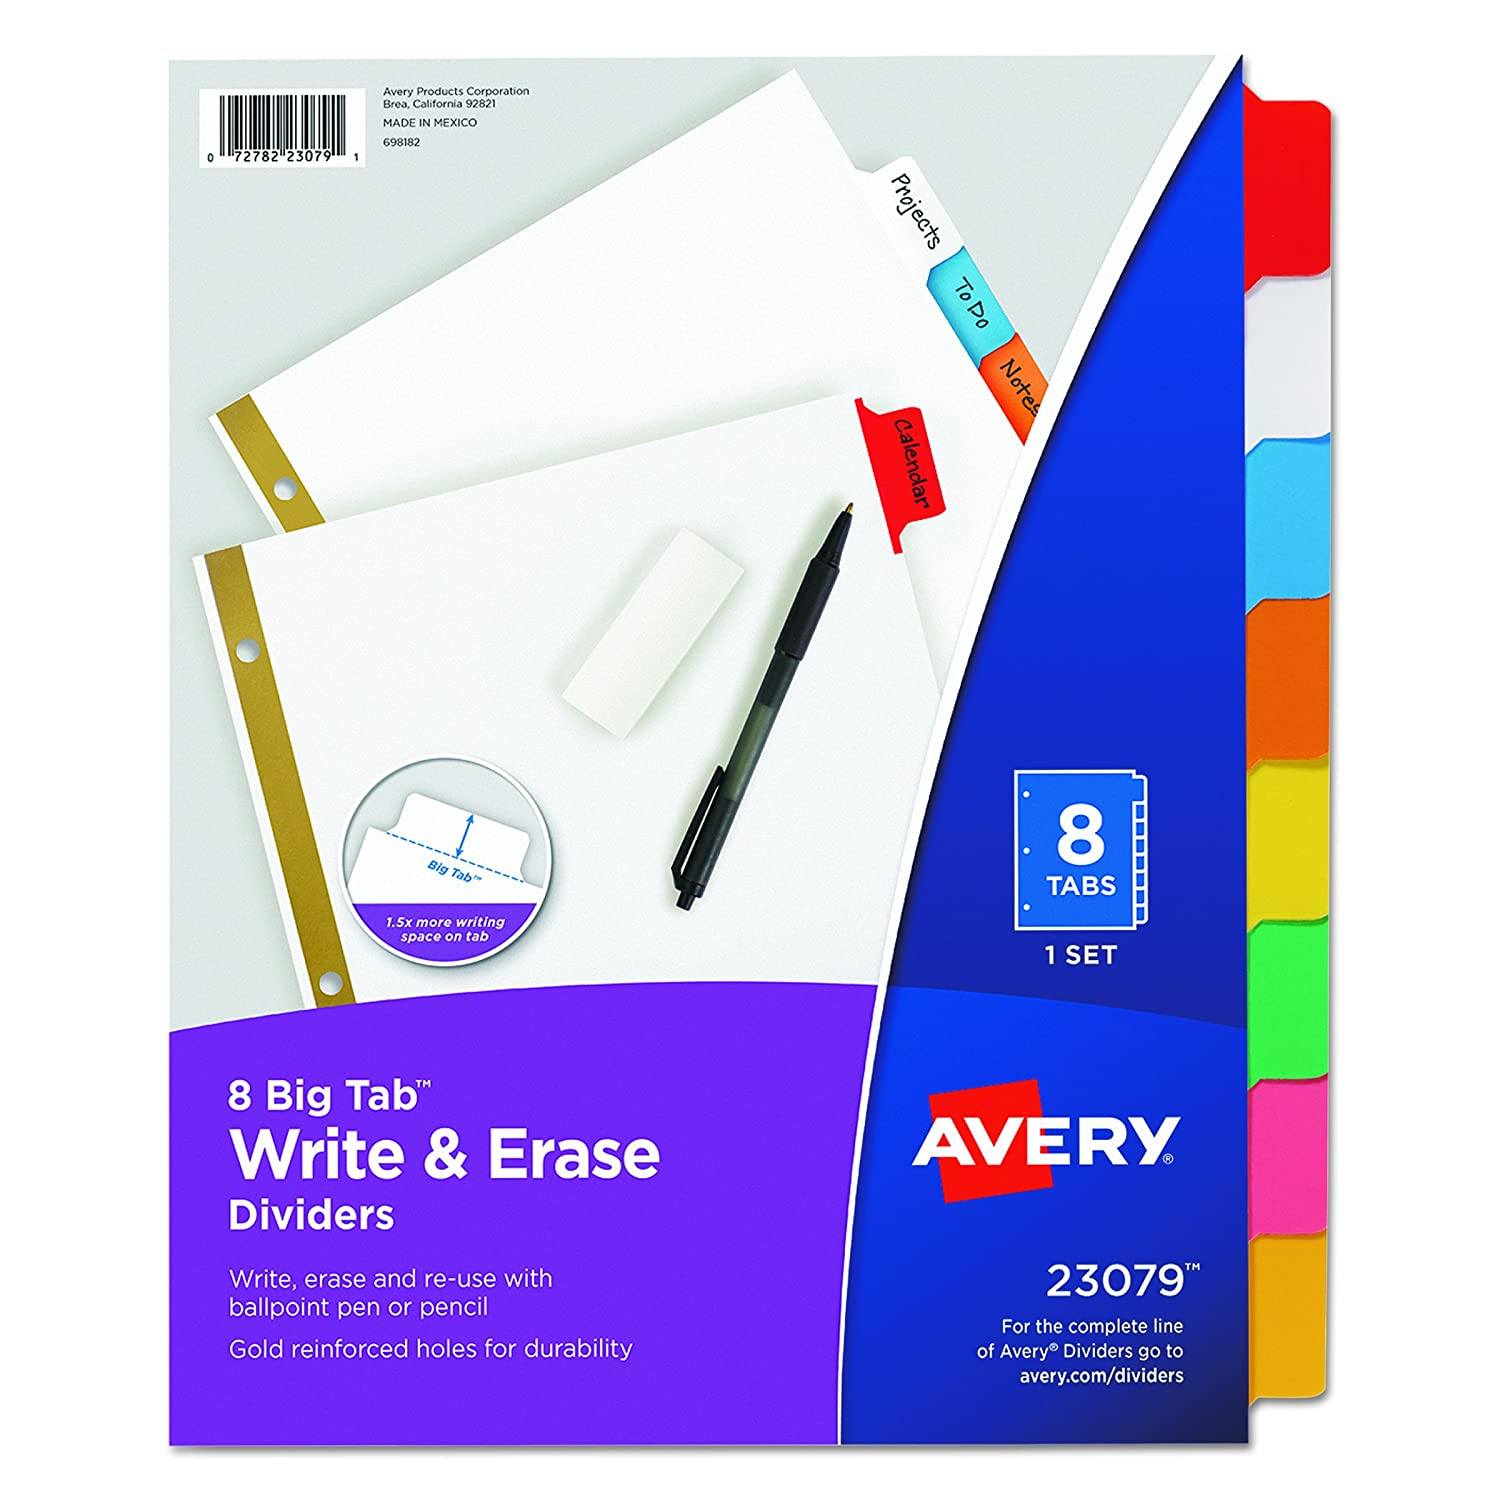 amazoncom avery big tab write erase dividers 5 tab set multicolor multi pack of 6 sets 23076 office products